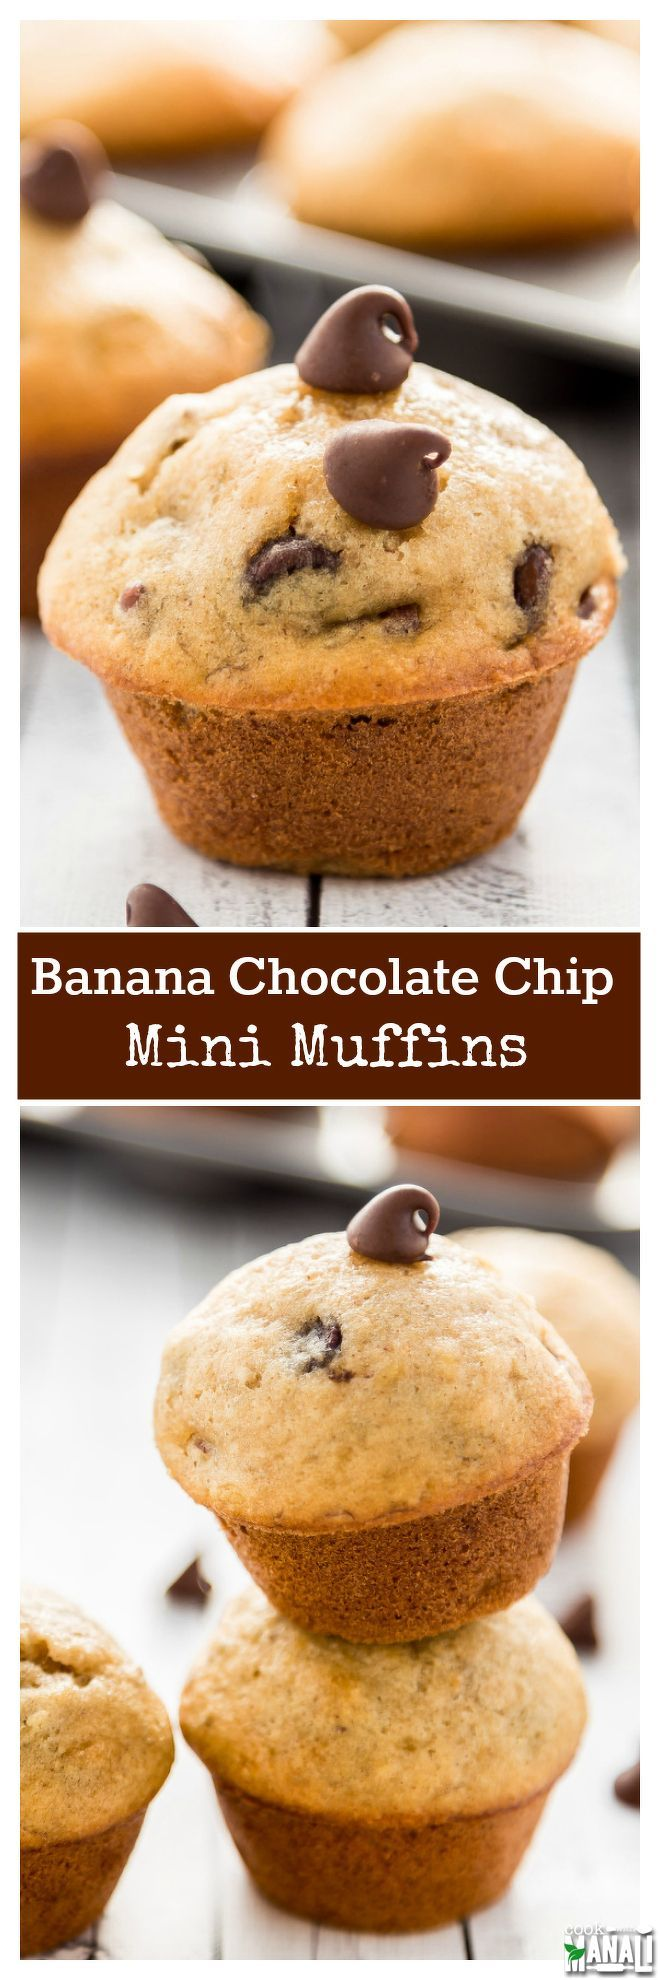 Super Moist Bite-Size Banana Chocolate Chip Mini Muffins are perfect for snacking! Find the recipe on http://www.cookwithmanali.com